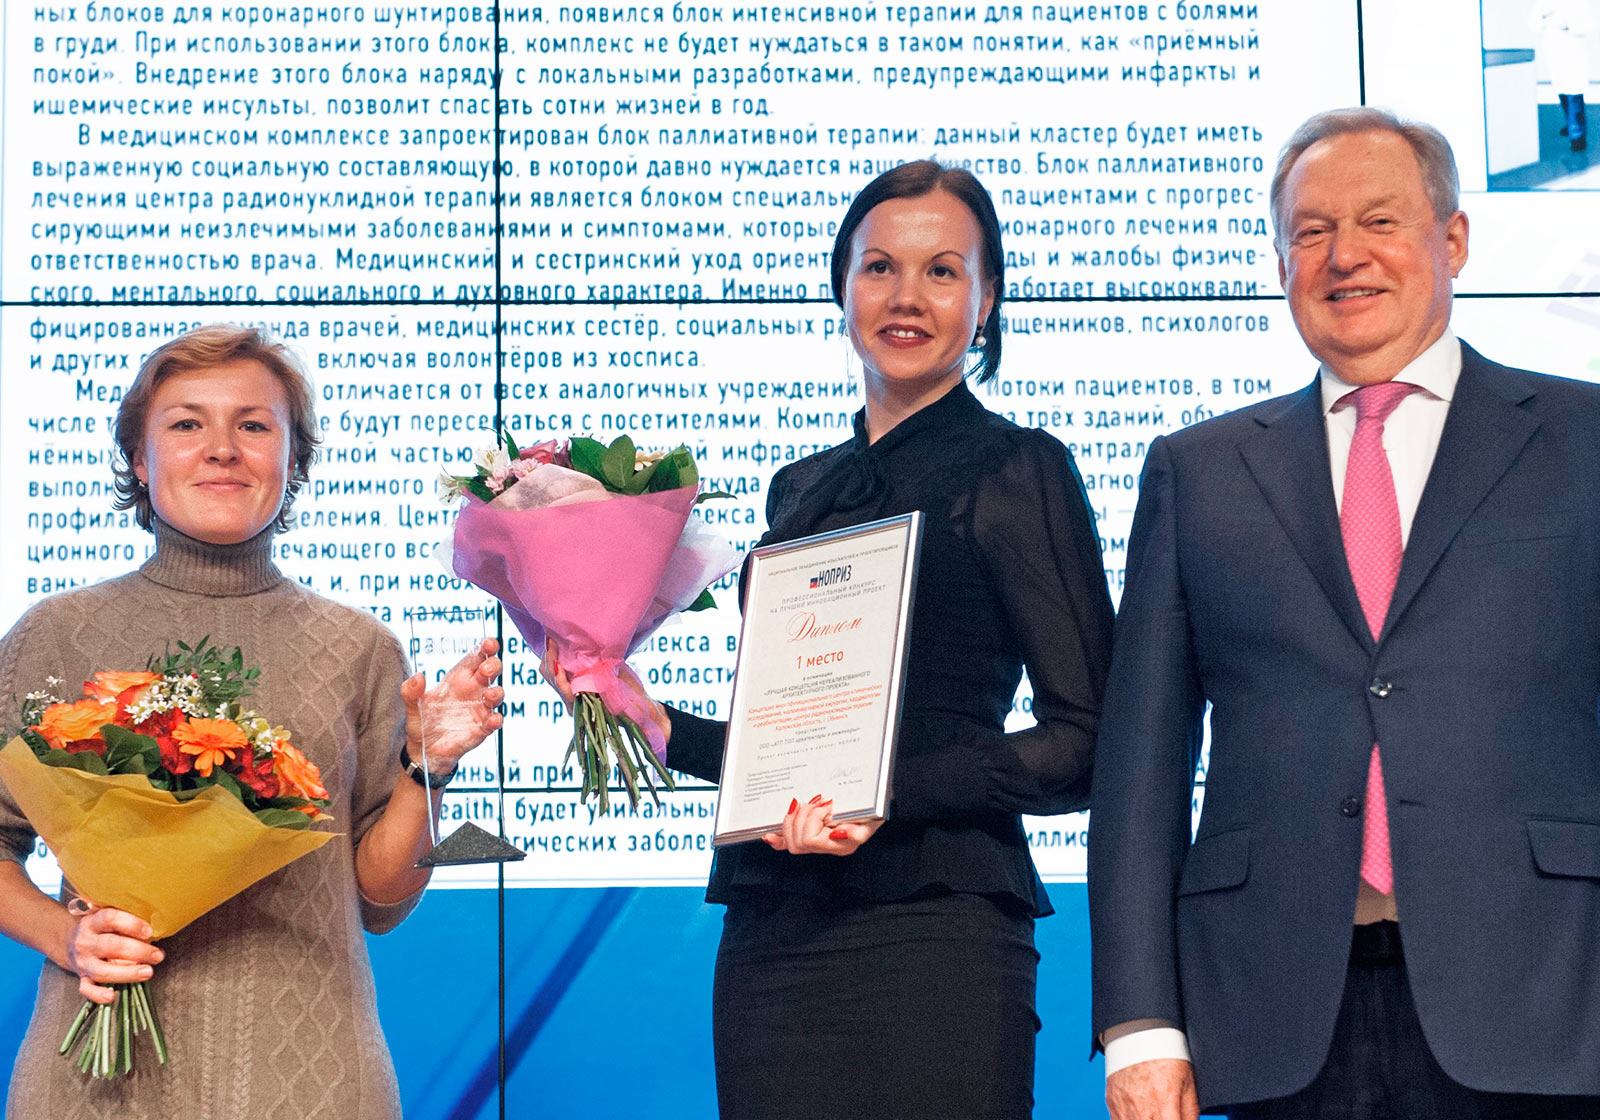 From left: Svetlana Alekseeva (General Director) and Tatyana Saveleva (Business Development) accept the prize on behalf of ATP Moscow. Photo: ATP TLP